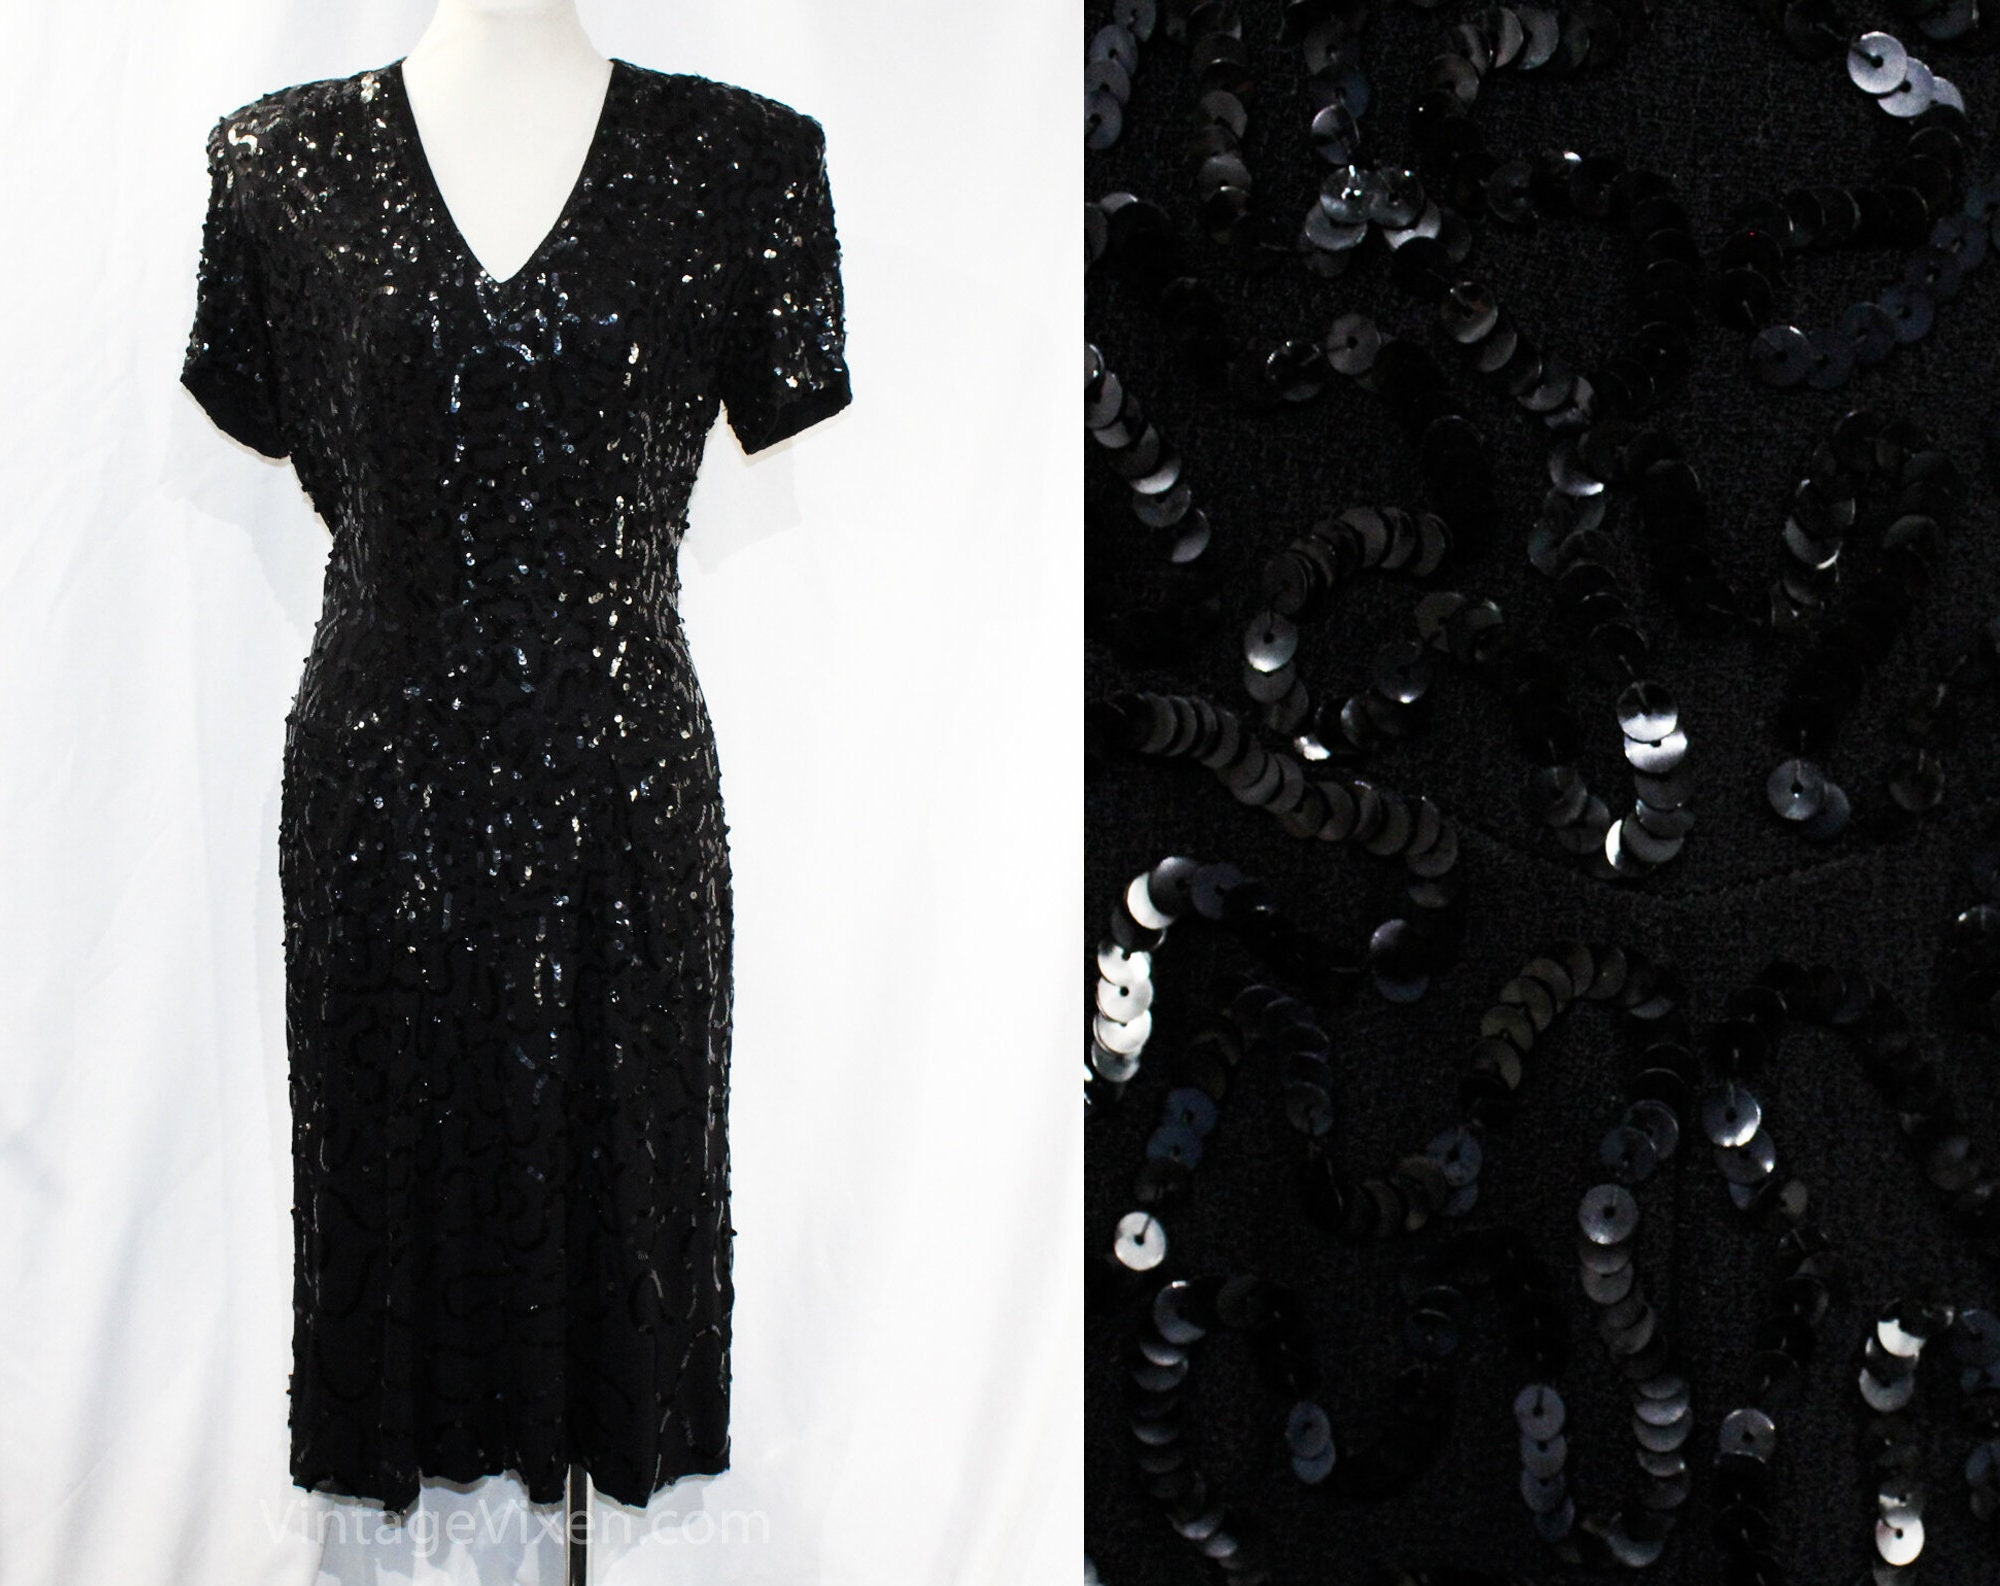 1940s Handbags and Purses History Large 1930S Dress - Custom Made Ca. 1938 Black Crepe  Sequins Cocktail Hollywood Style Wwii Wartime Era Hourglass Bust 39.5 Waist 32 $245.00 AT vintagedancer.com